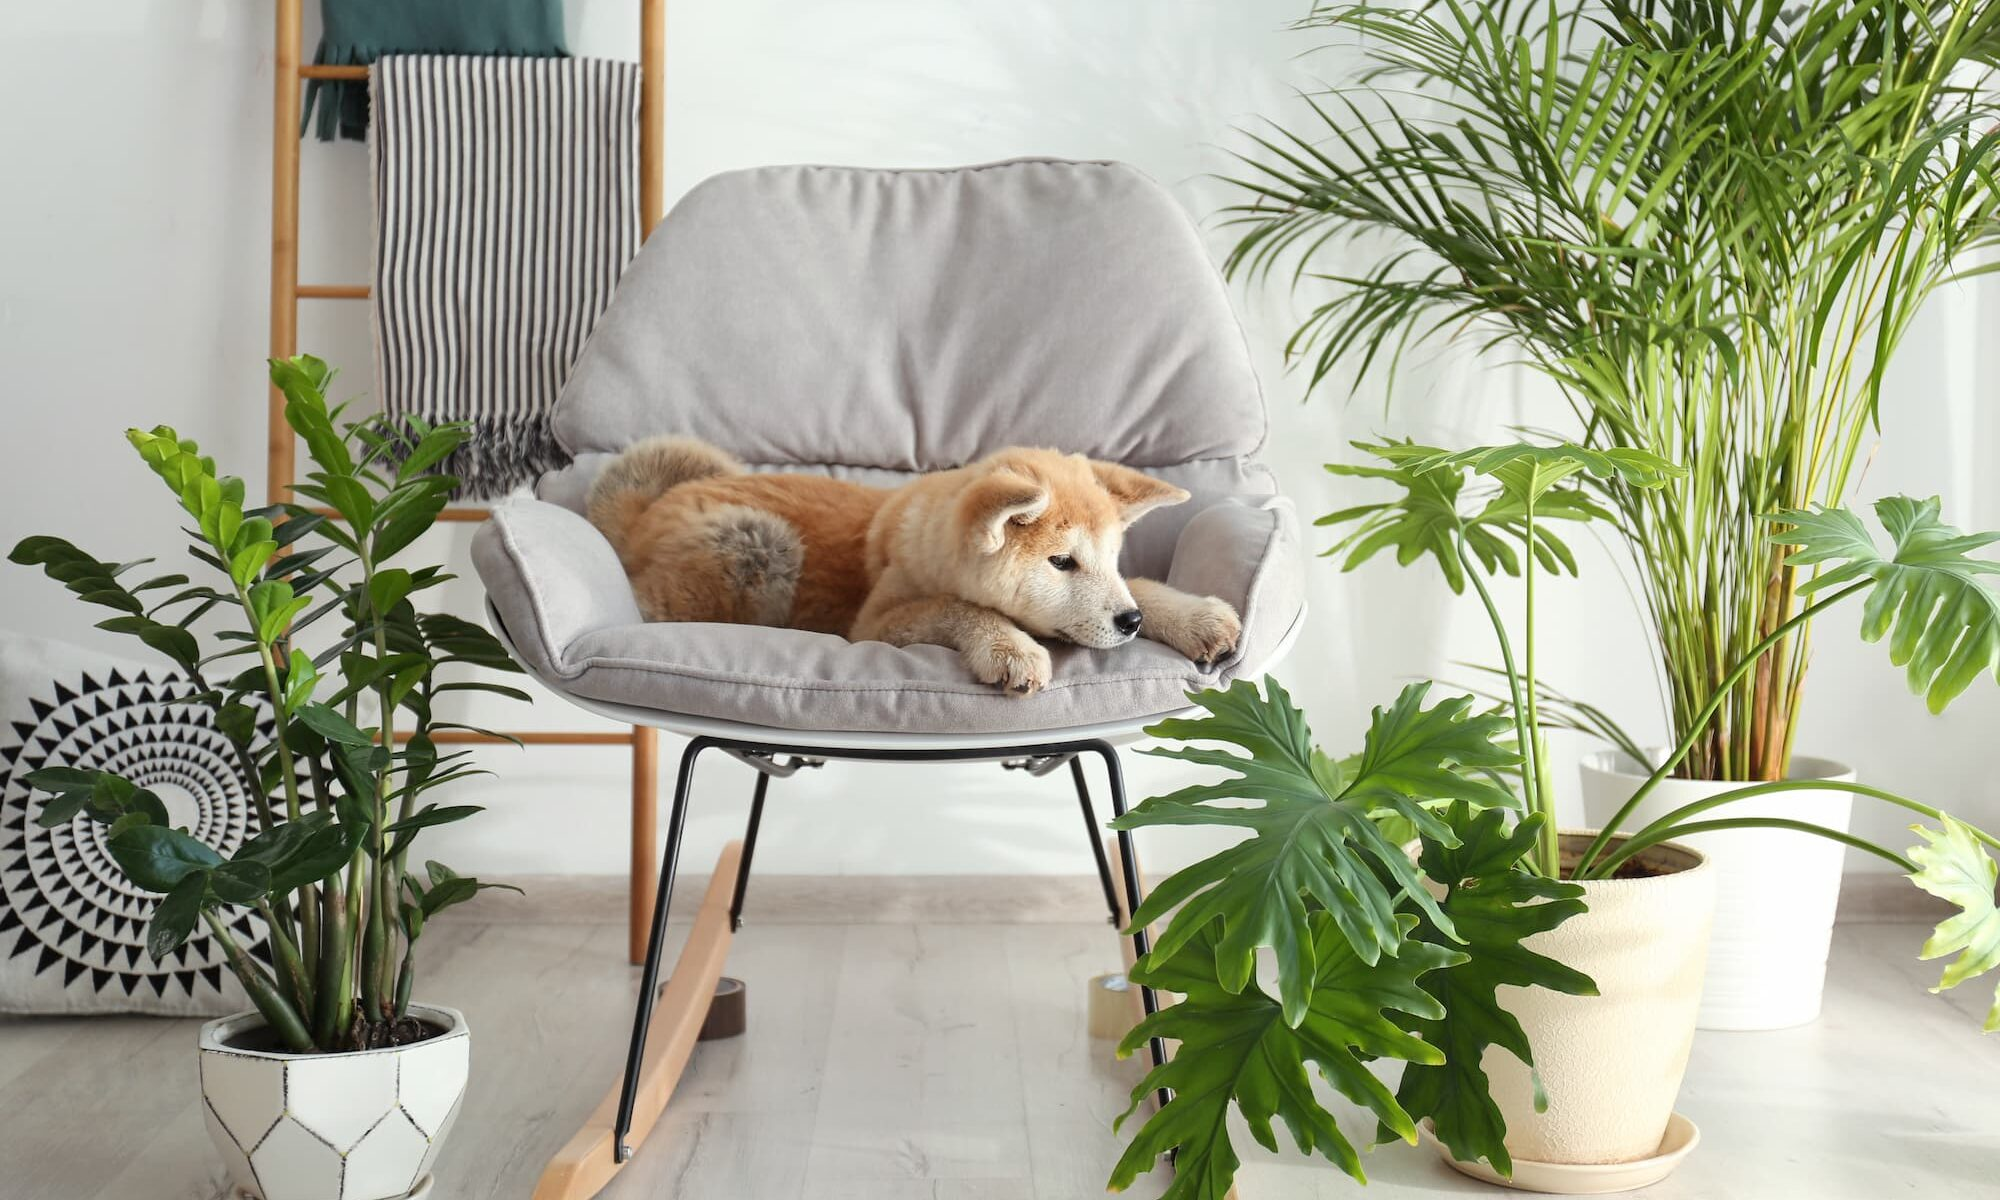 Pet Safe Plants and What Plants are Safe for Dogs